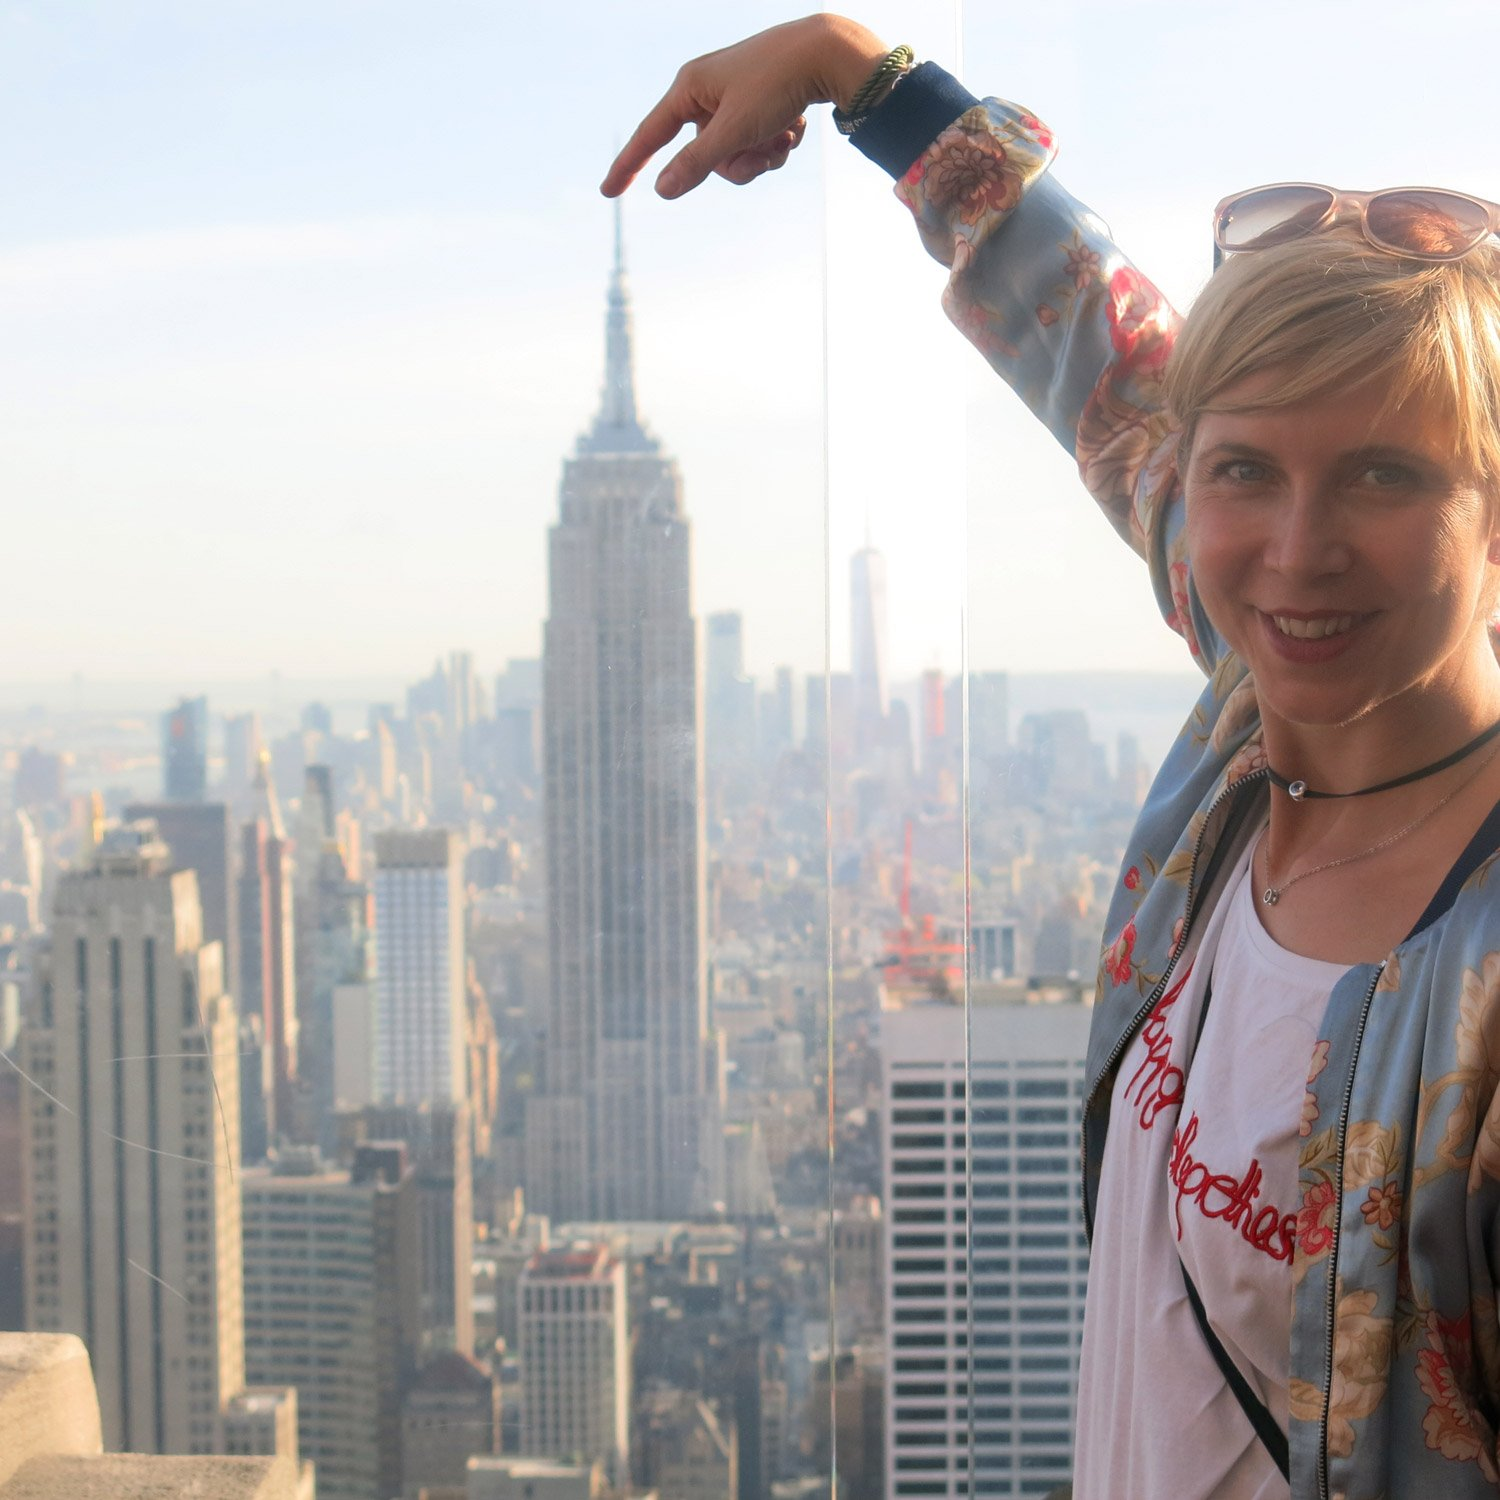 Power-Sightseeing, New York City, Conny Doll, Fashionblog, Empire State Building, vom Top of the Rocks, Rockefeller, Stadt von oben